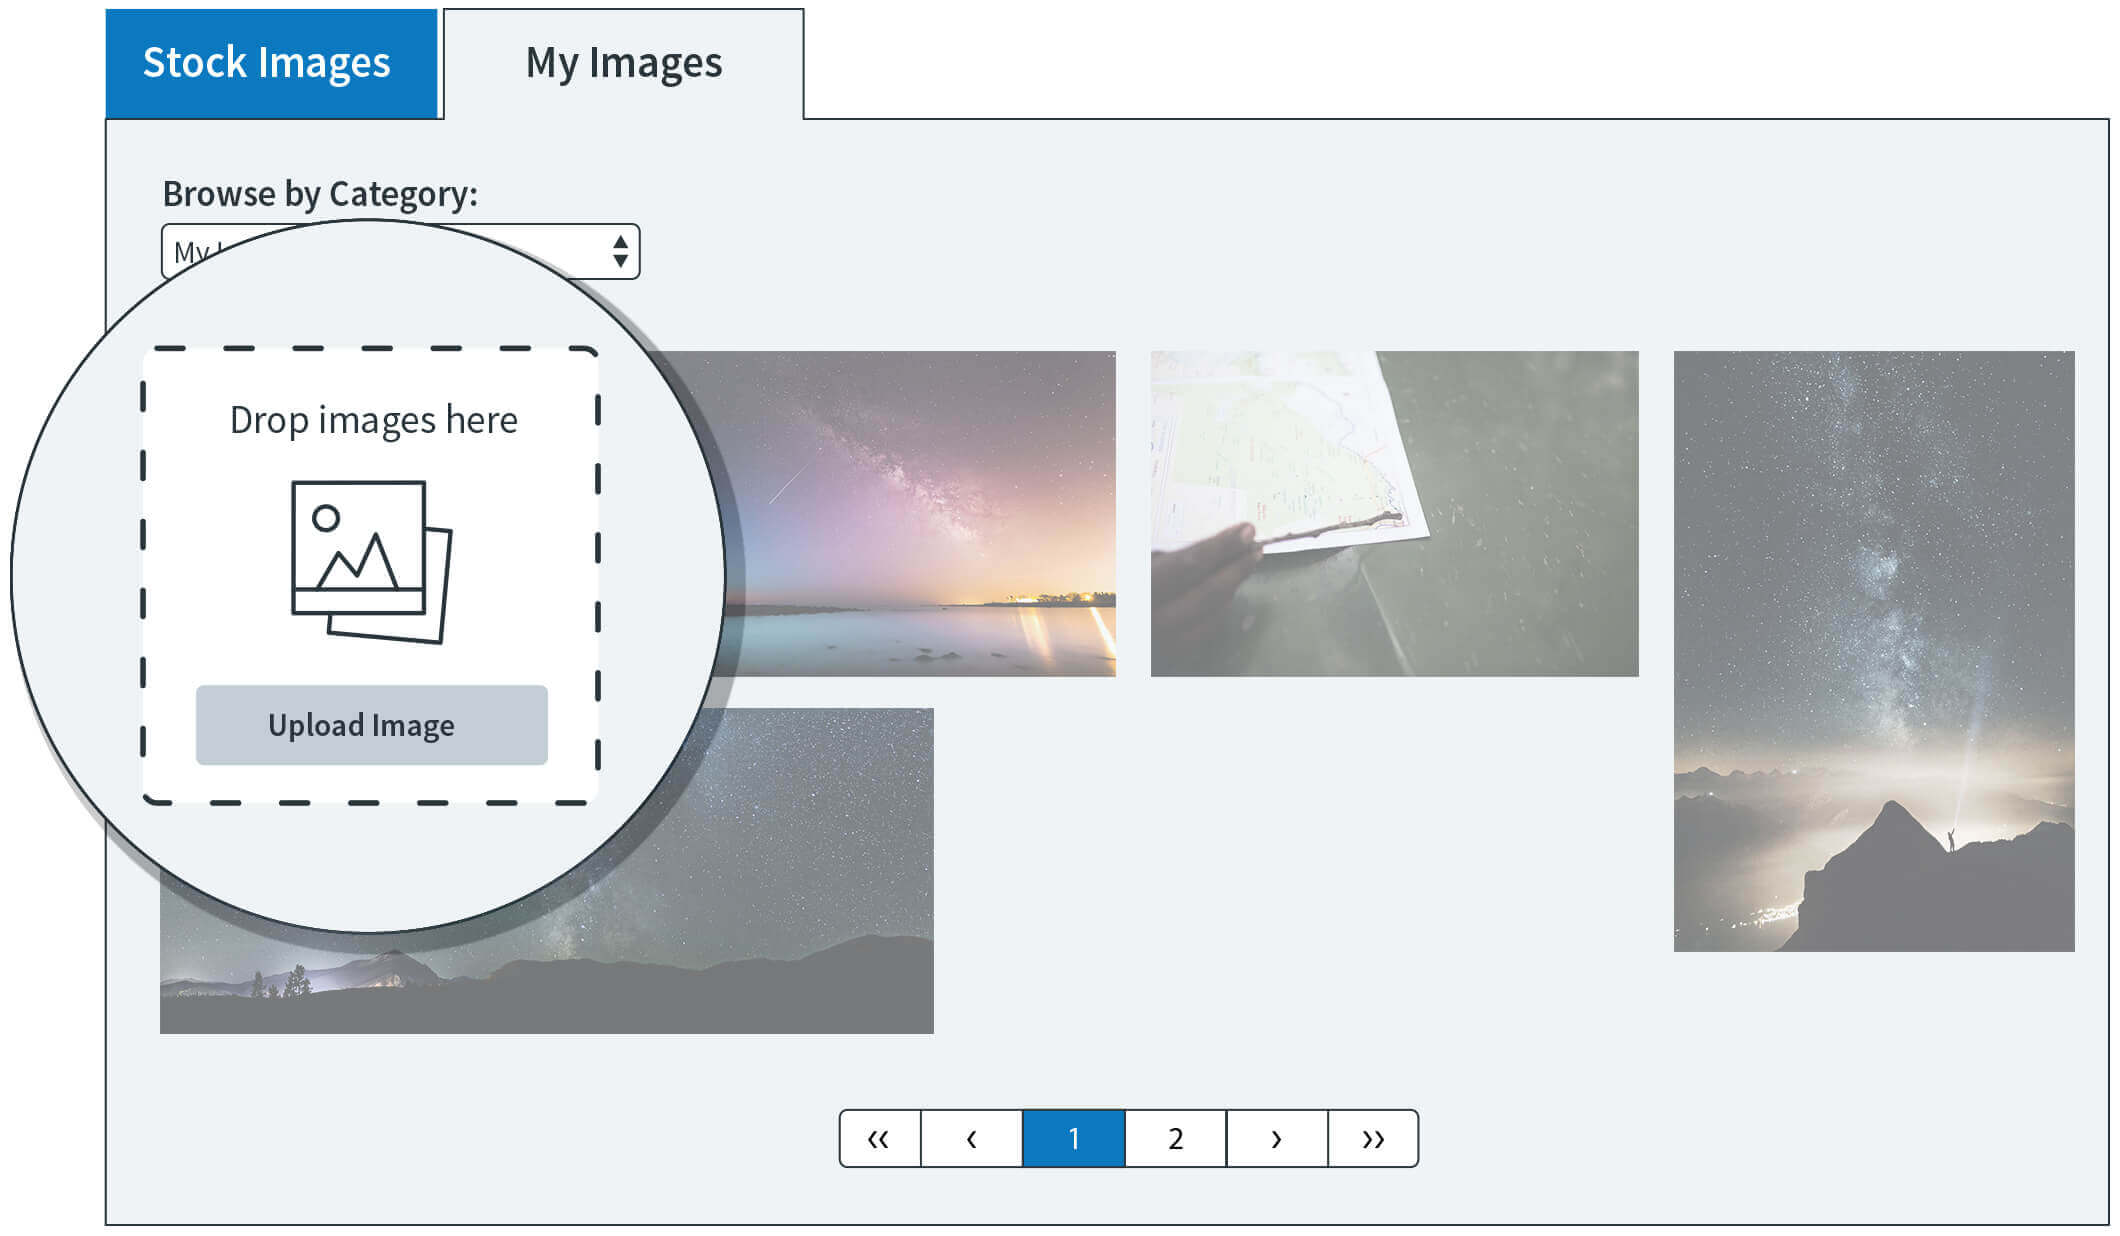 Thousands of Images at Your Fingertips